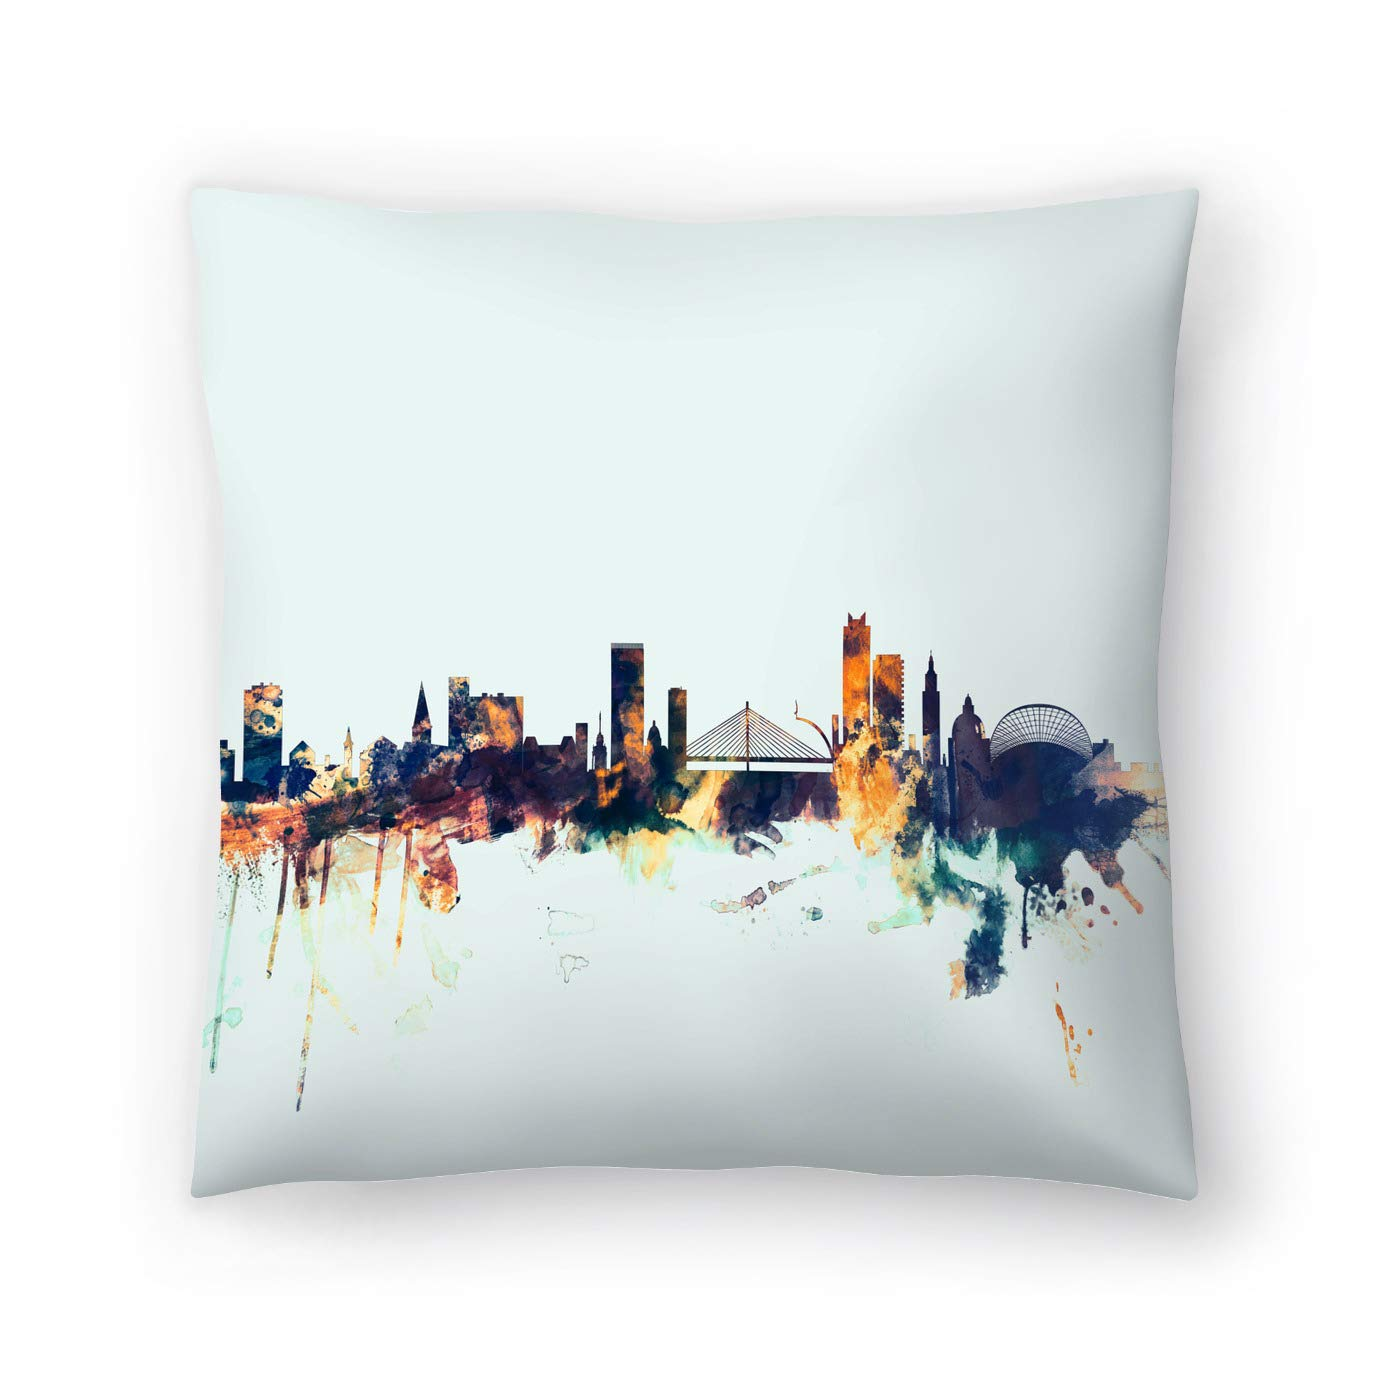 Buy American Flat Liege Belgium Skyline New 1 Art Pause Pillow By Michael Tompsett 20 X 20 Online At Low Prices In India Amazon In